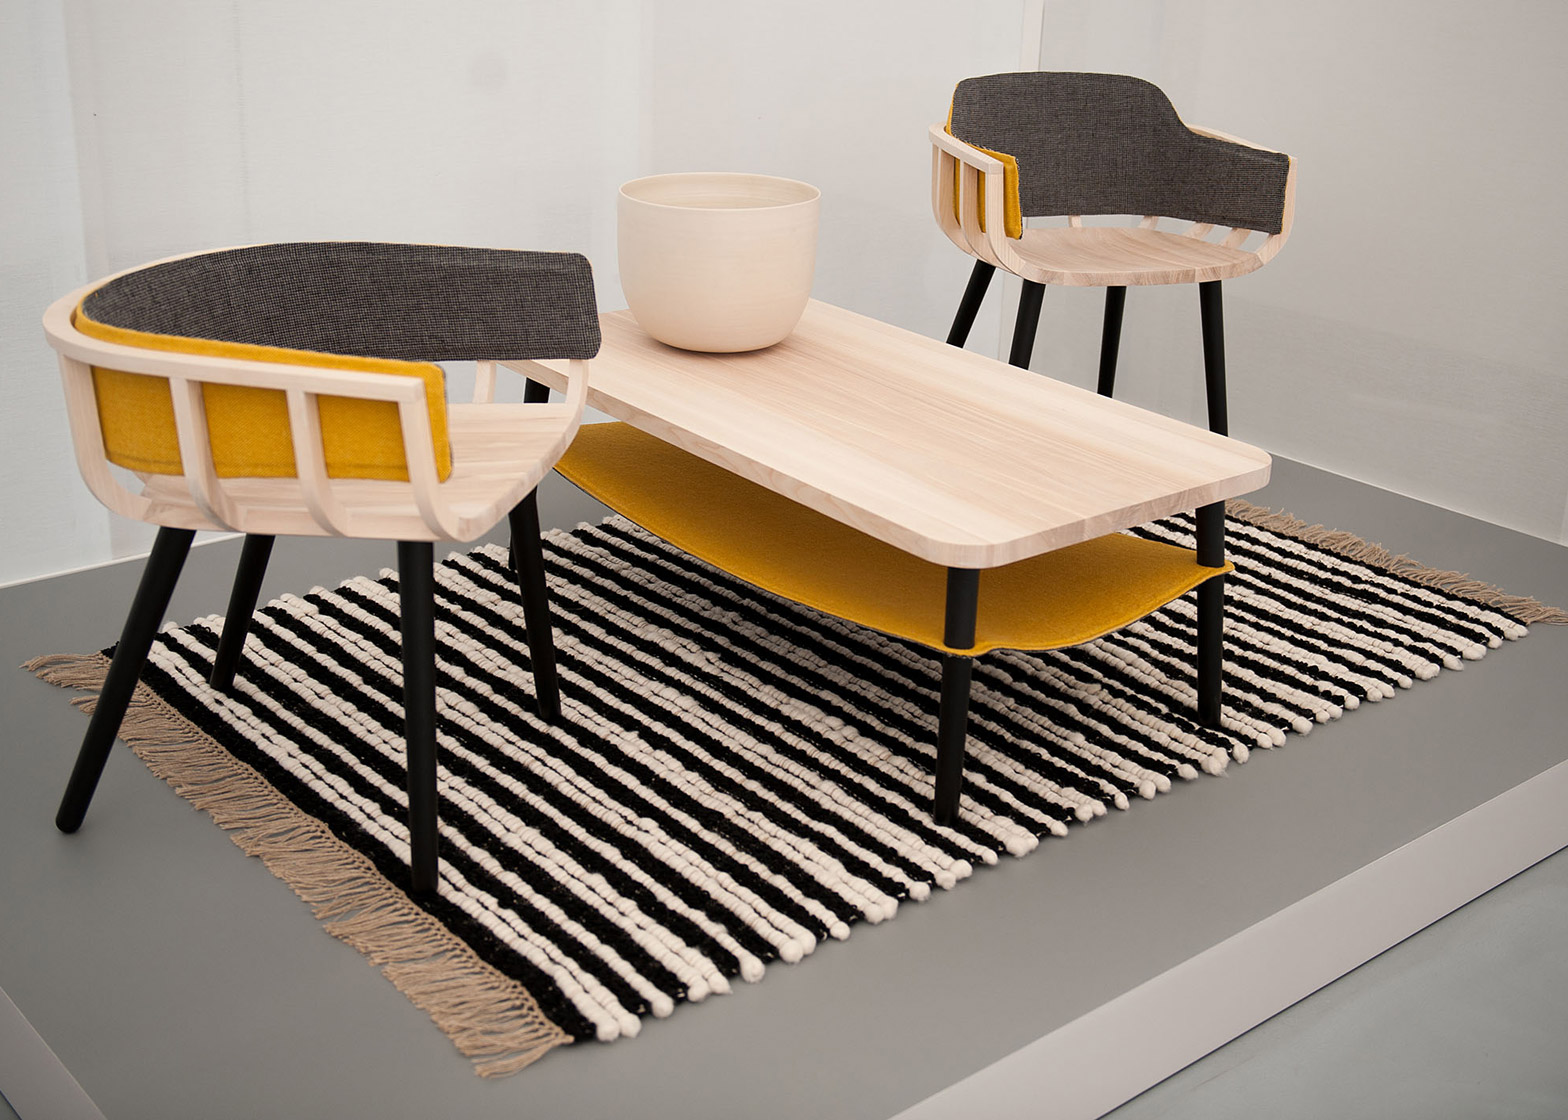 Mourne Milano Rug by Mourne Textiles, and Frame Chair and Hang Table by Notion and Mourne Textiles